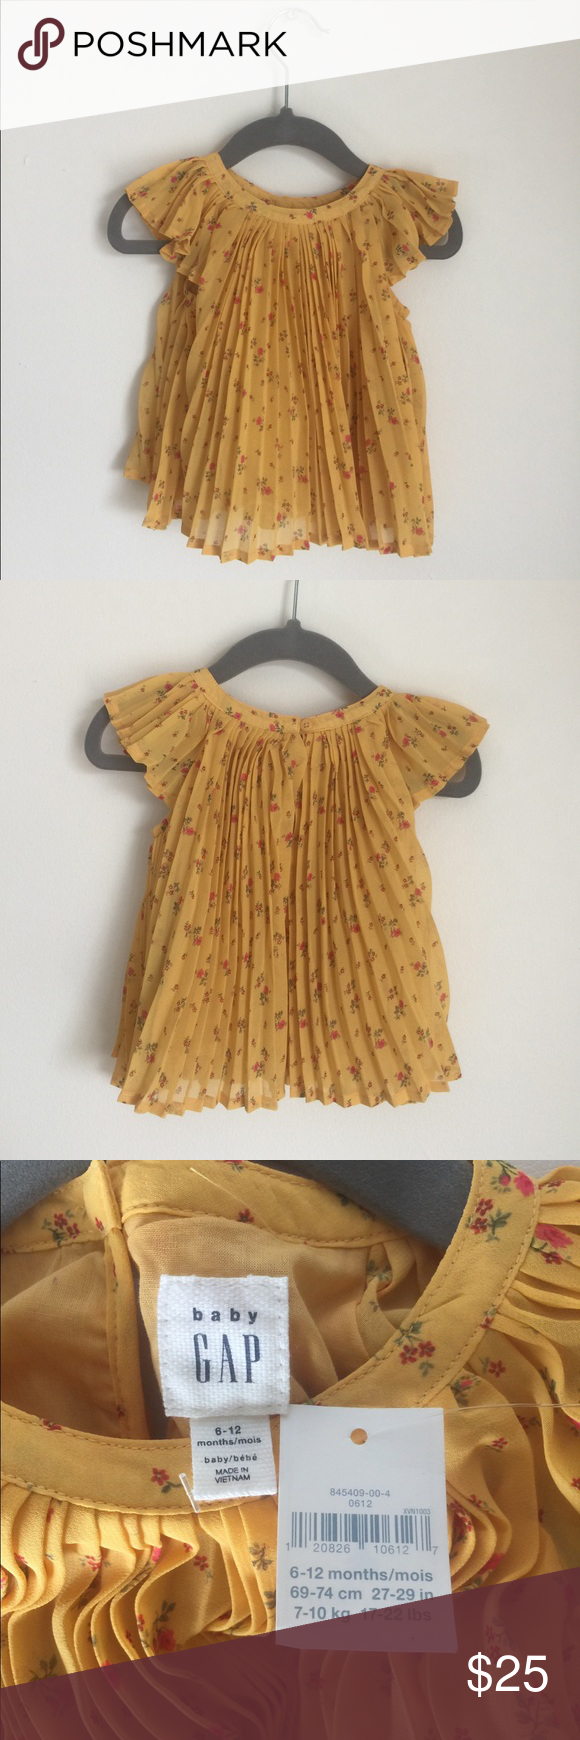 Yellow dress 3-6 months  GAP  NWT Pleated Floral Baby Ruffle Dress M NWT  Floral tunic